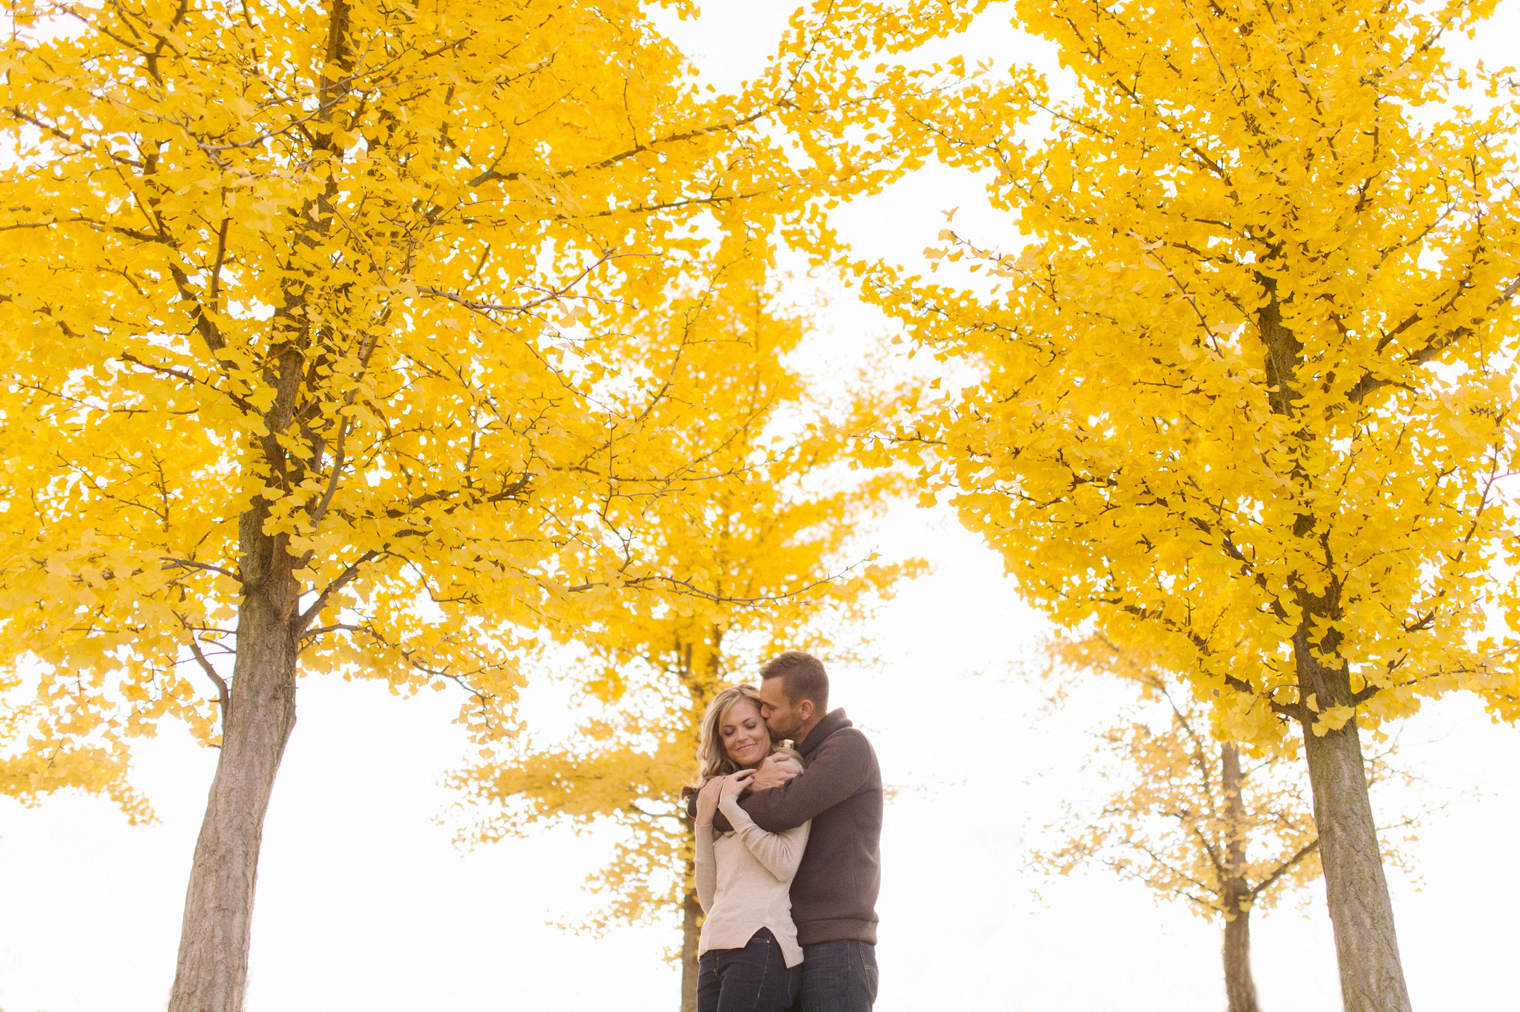 Stunning fall foliage at a couples session at the Matthei Botanical Gardens in Ann Arbor by wedding photographer Heather Jowett.